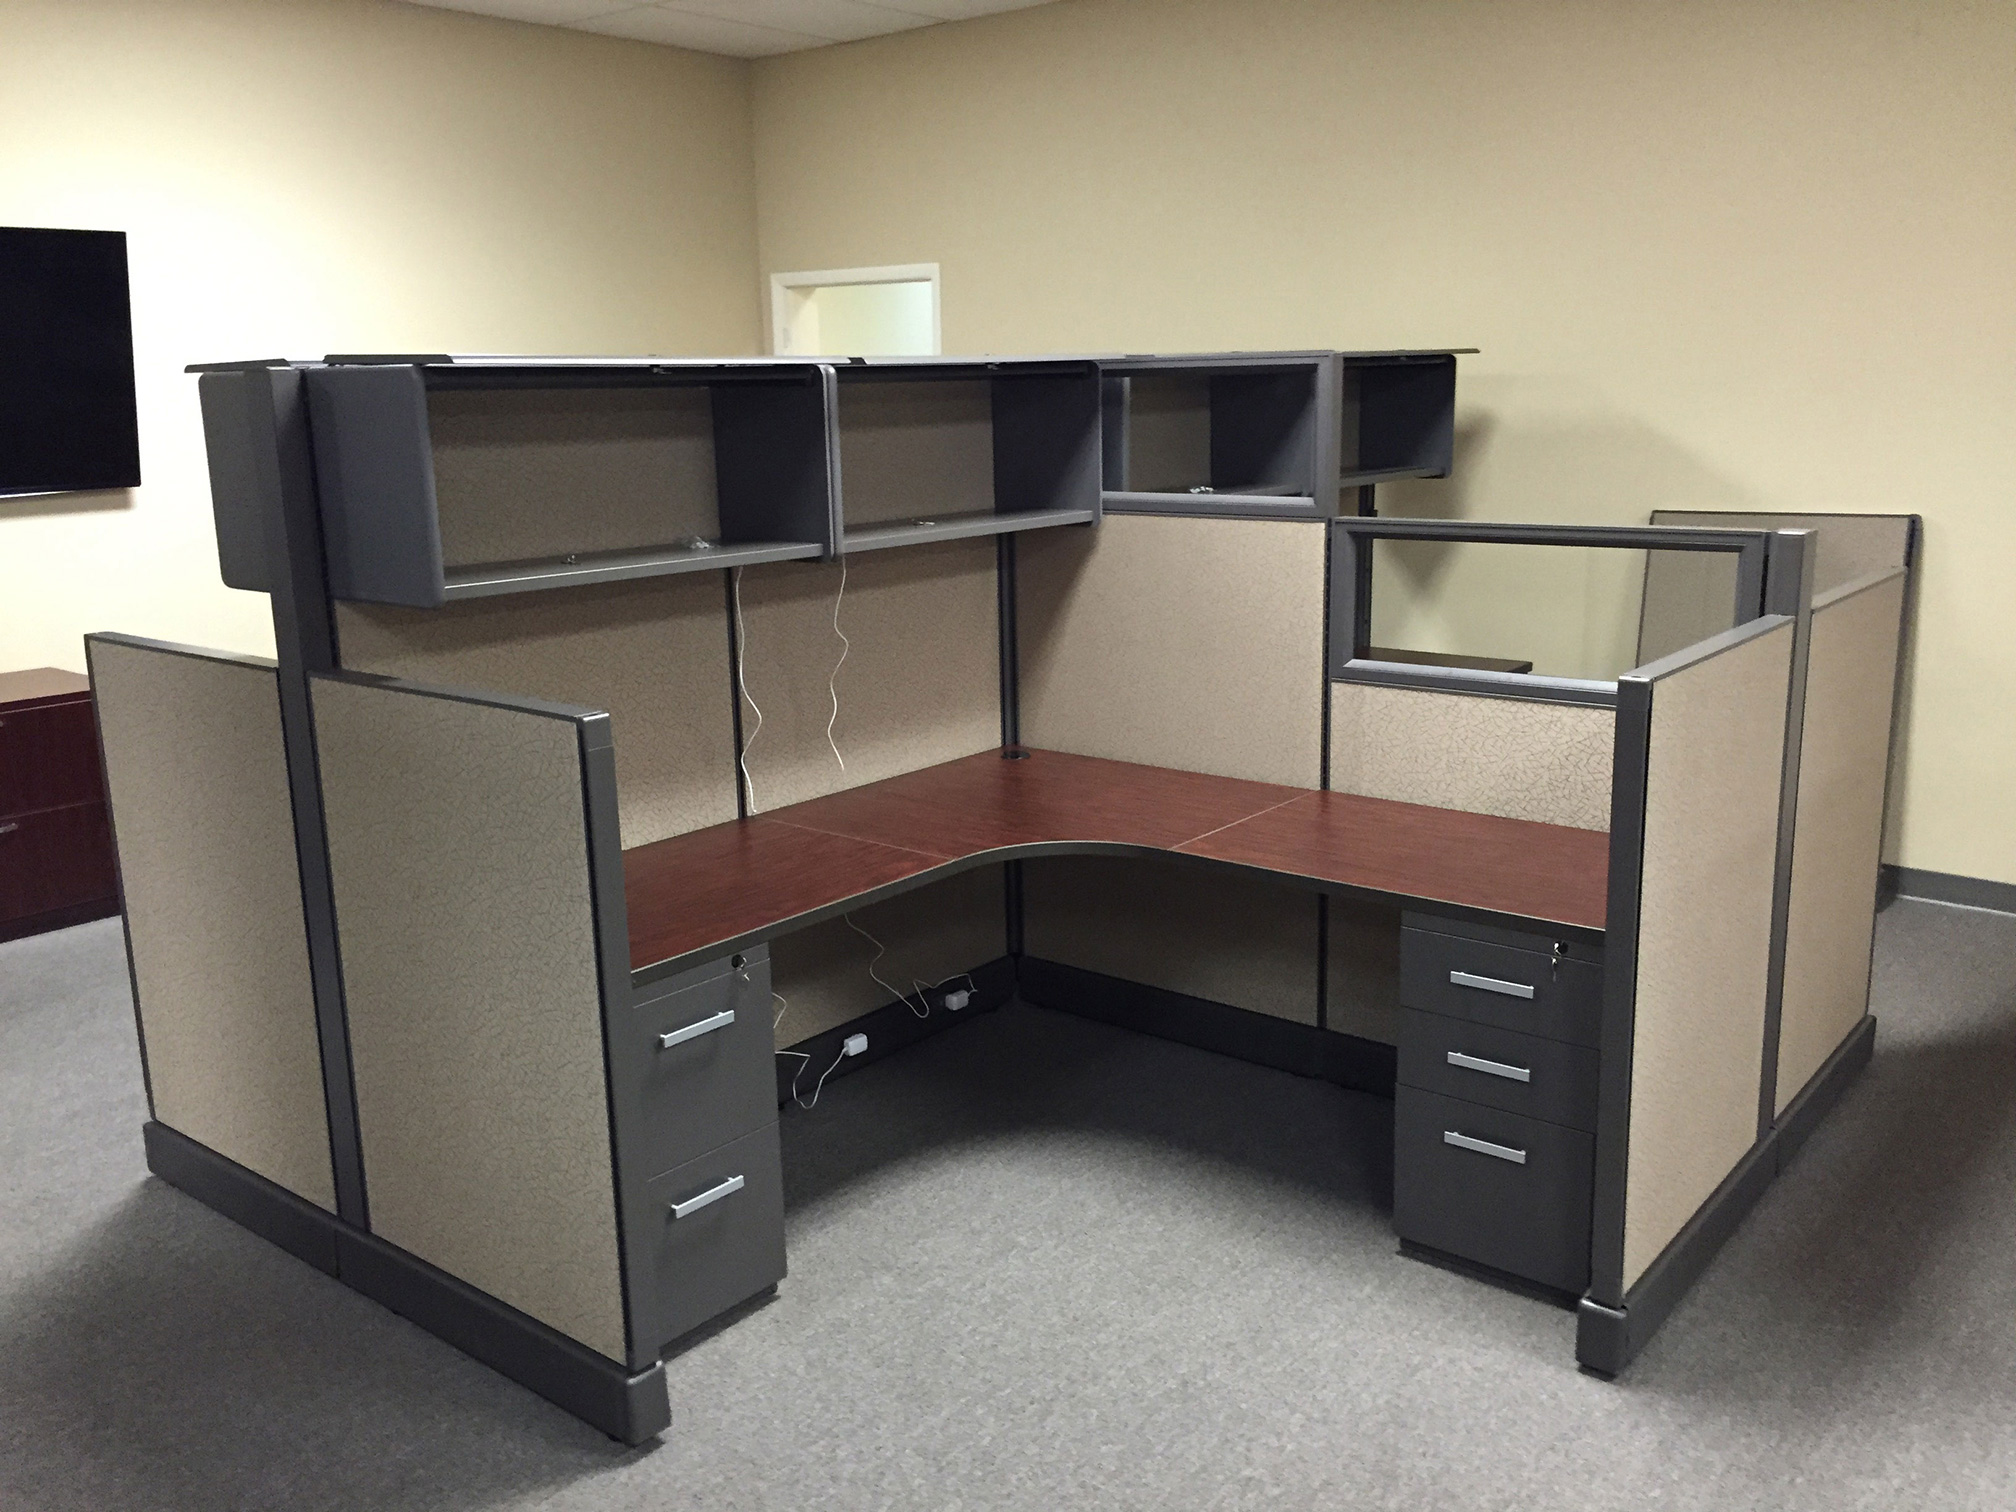 office-cubicles-for-sale-in-rockledge-florida-2.jpg